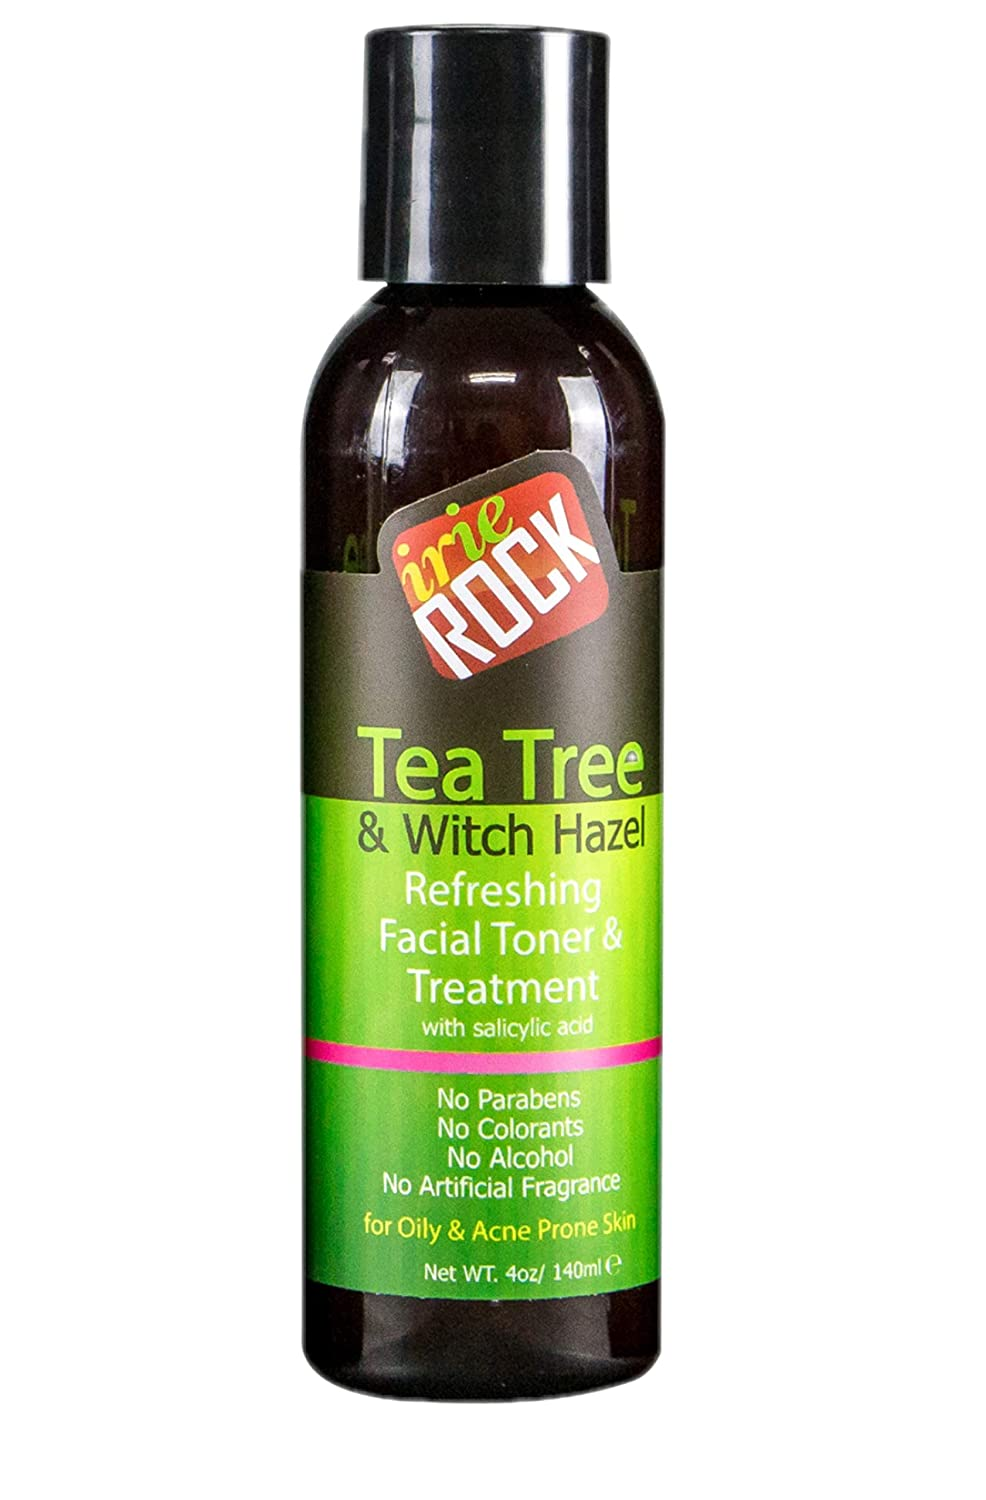 Irie Rock Refreshing Acne Facial Toner and Treatment with Salicylic Acid - 4oz - Anti Acne, Blackhead, Shrink Enlarge Pores, Prevent Future Breakout